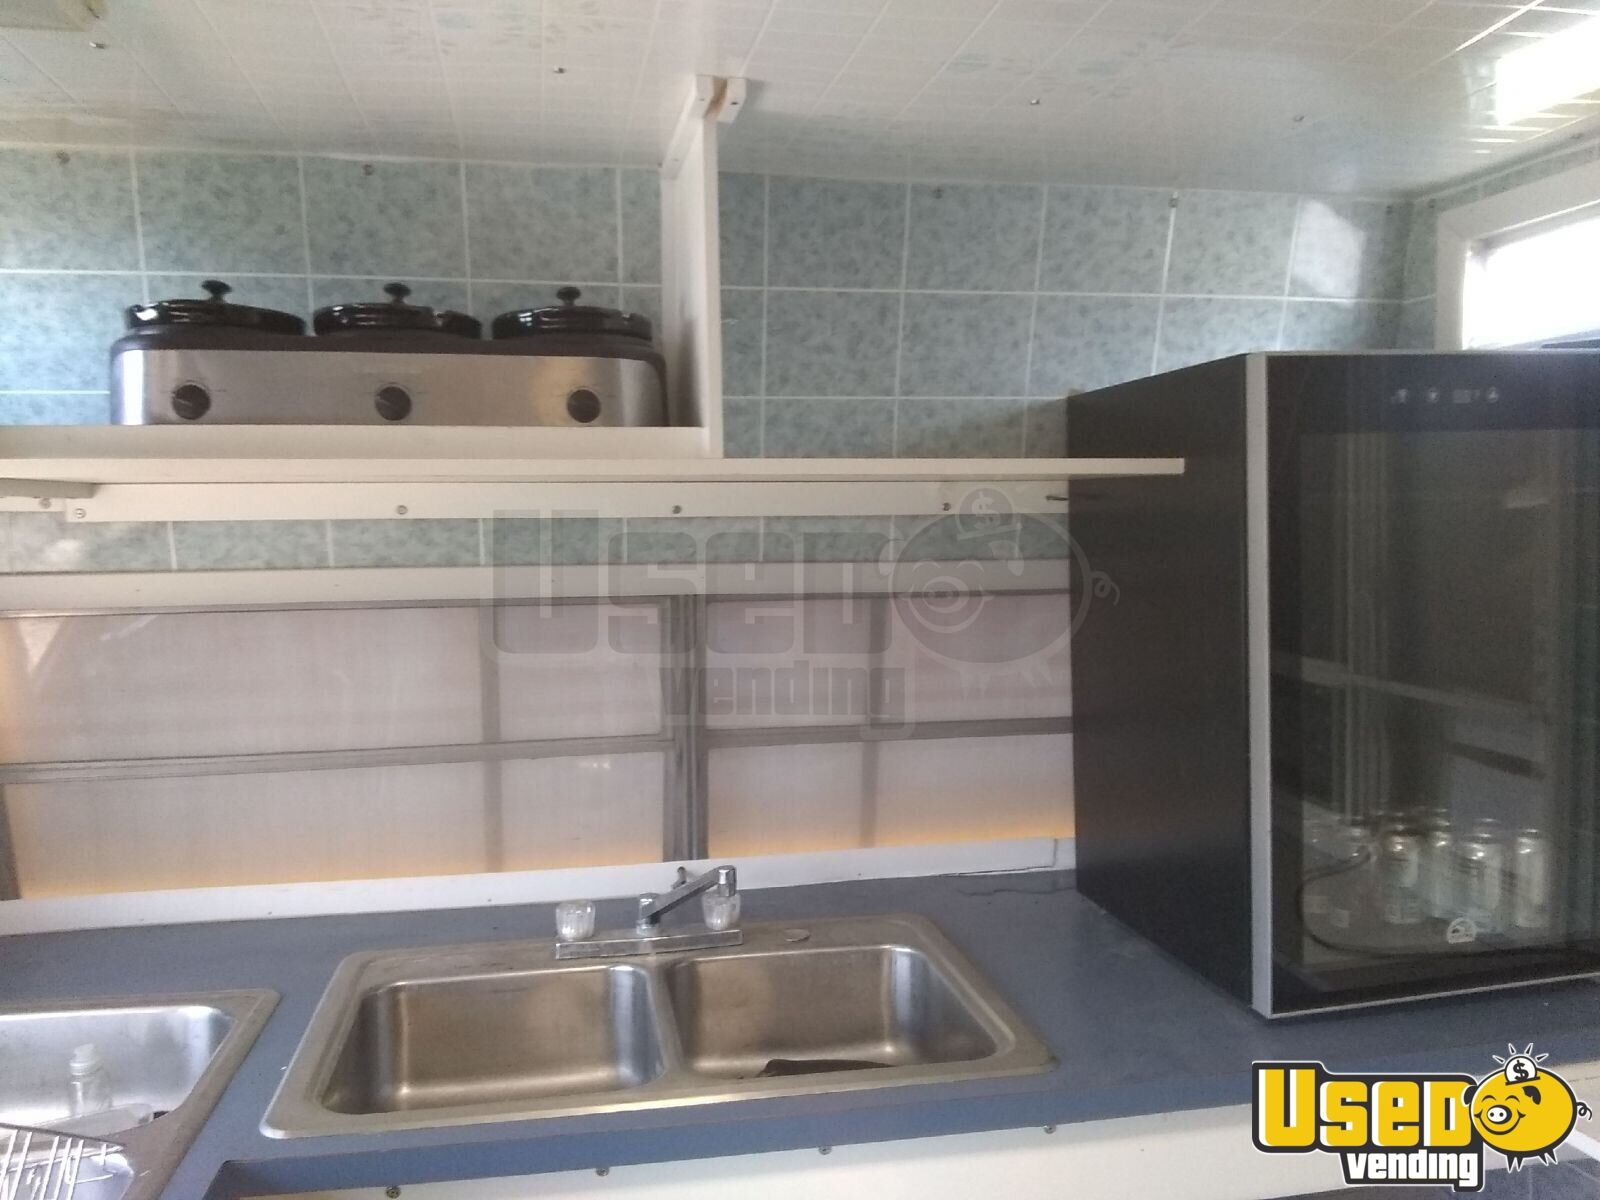 Food Concession Trailer Concession Trailer Exhaust Fan Wyoming for Sale - 13